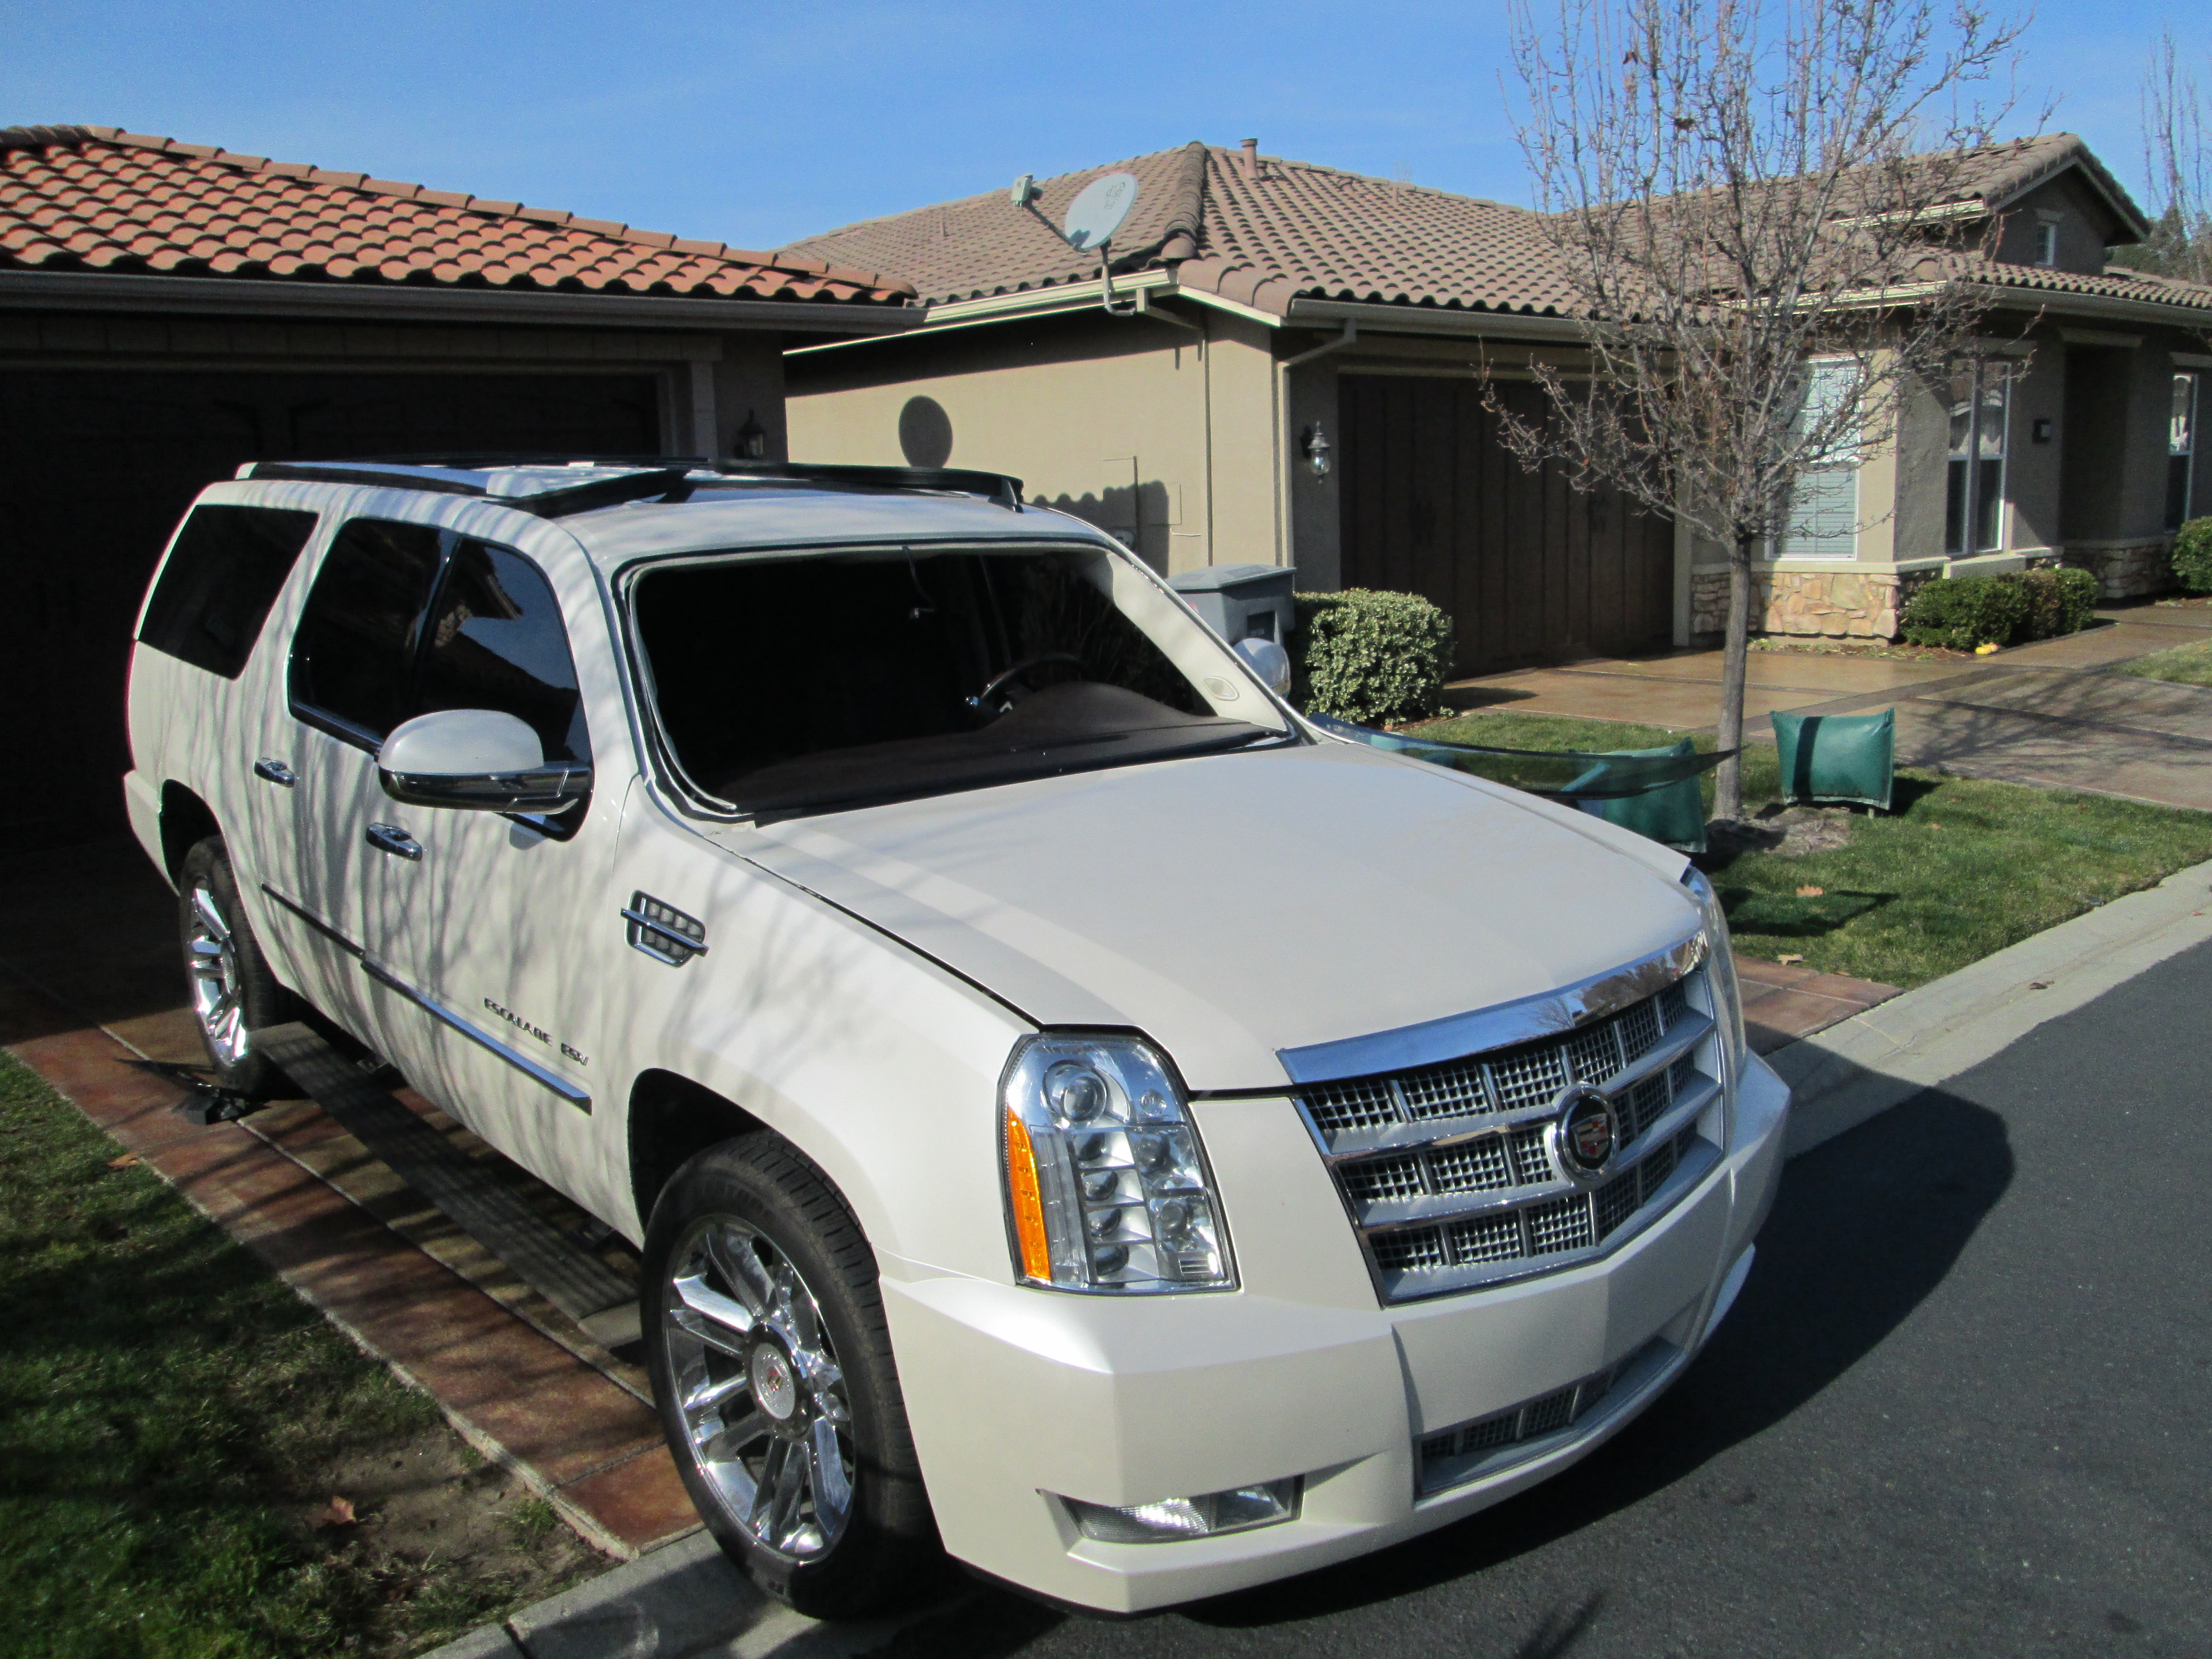 Cadillac Escalade Windshield Replacement Roseville, CA